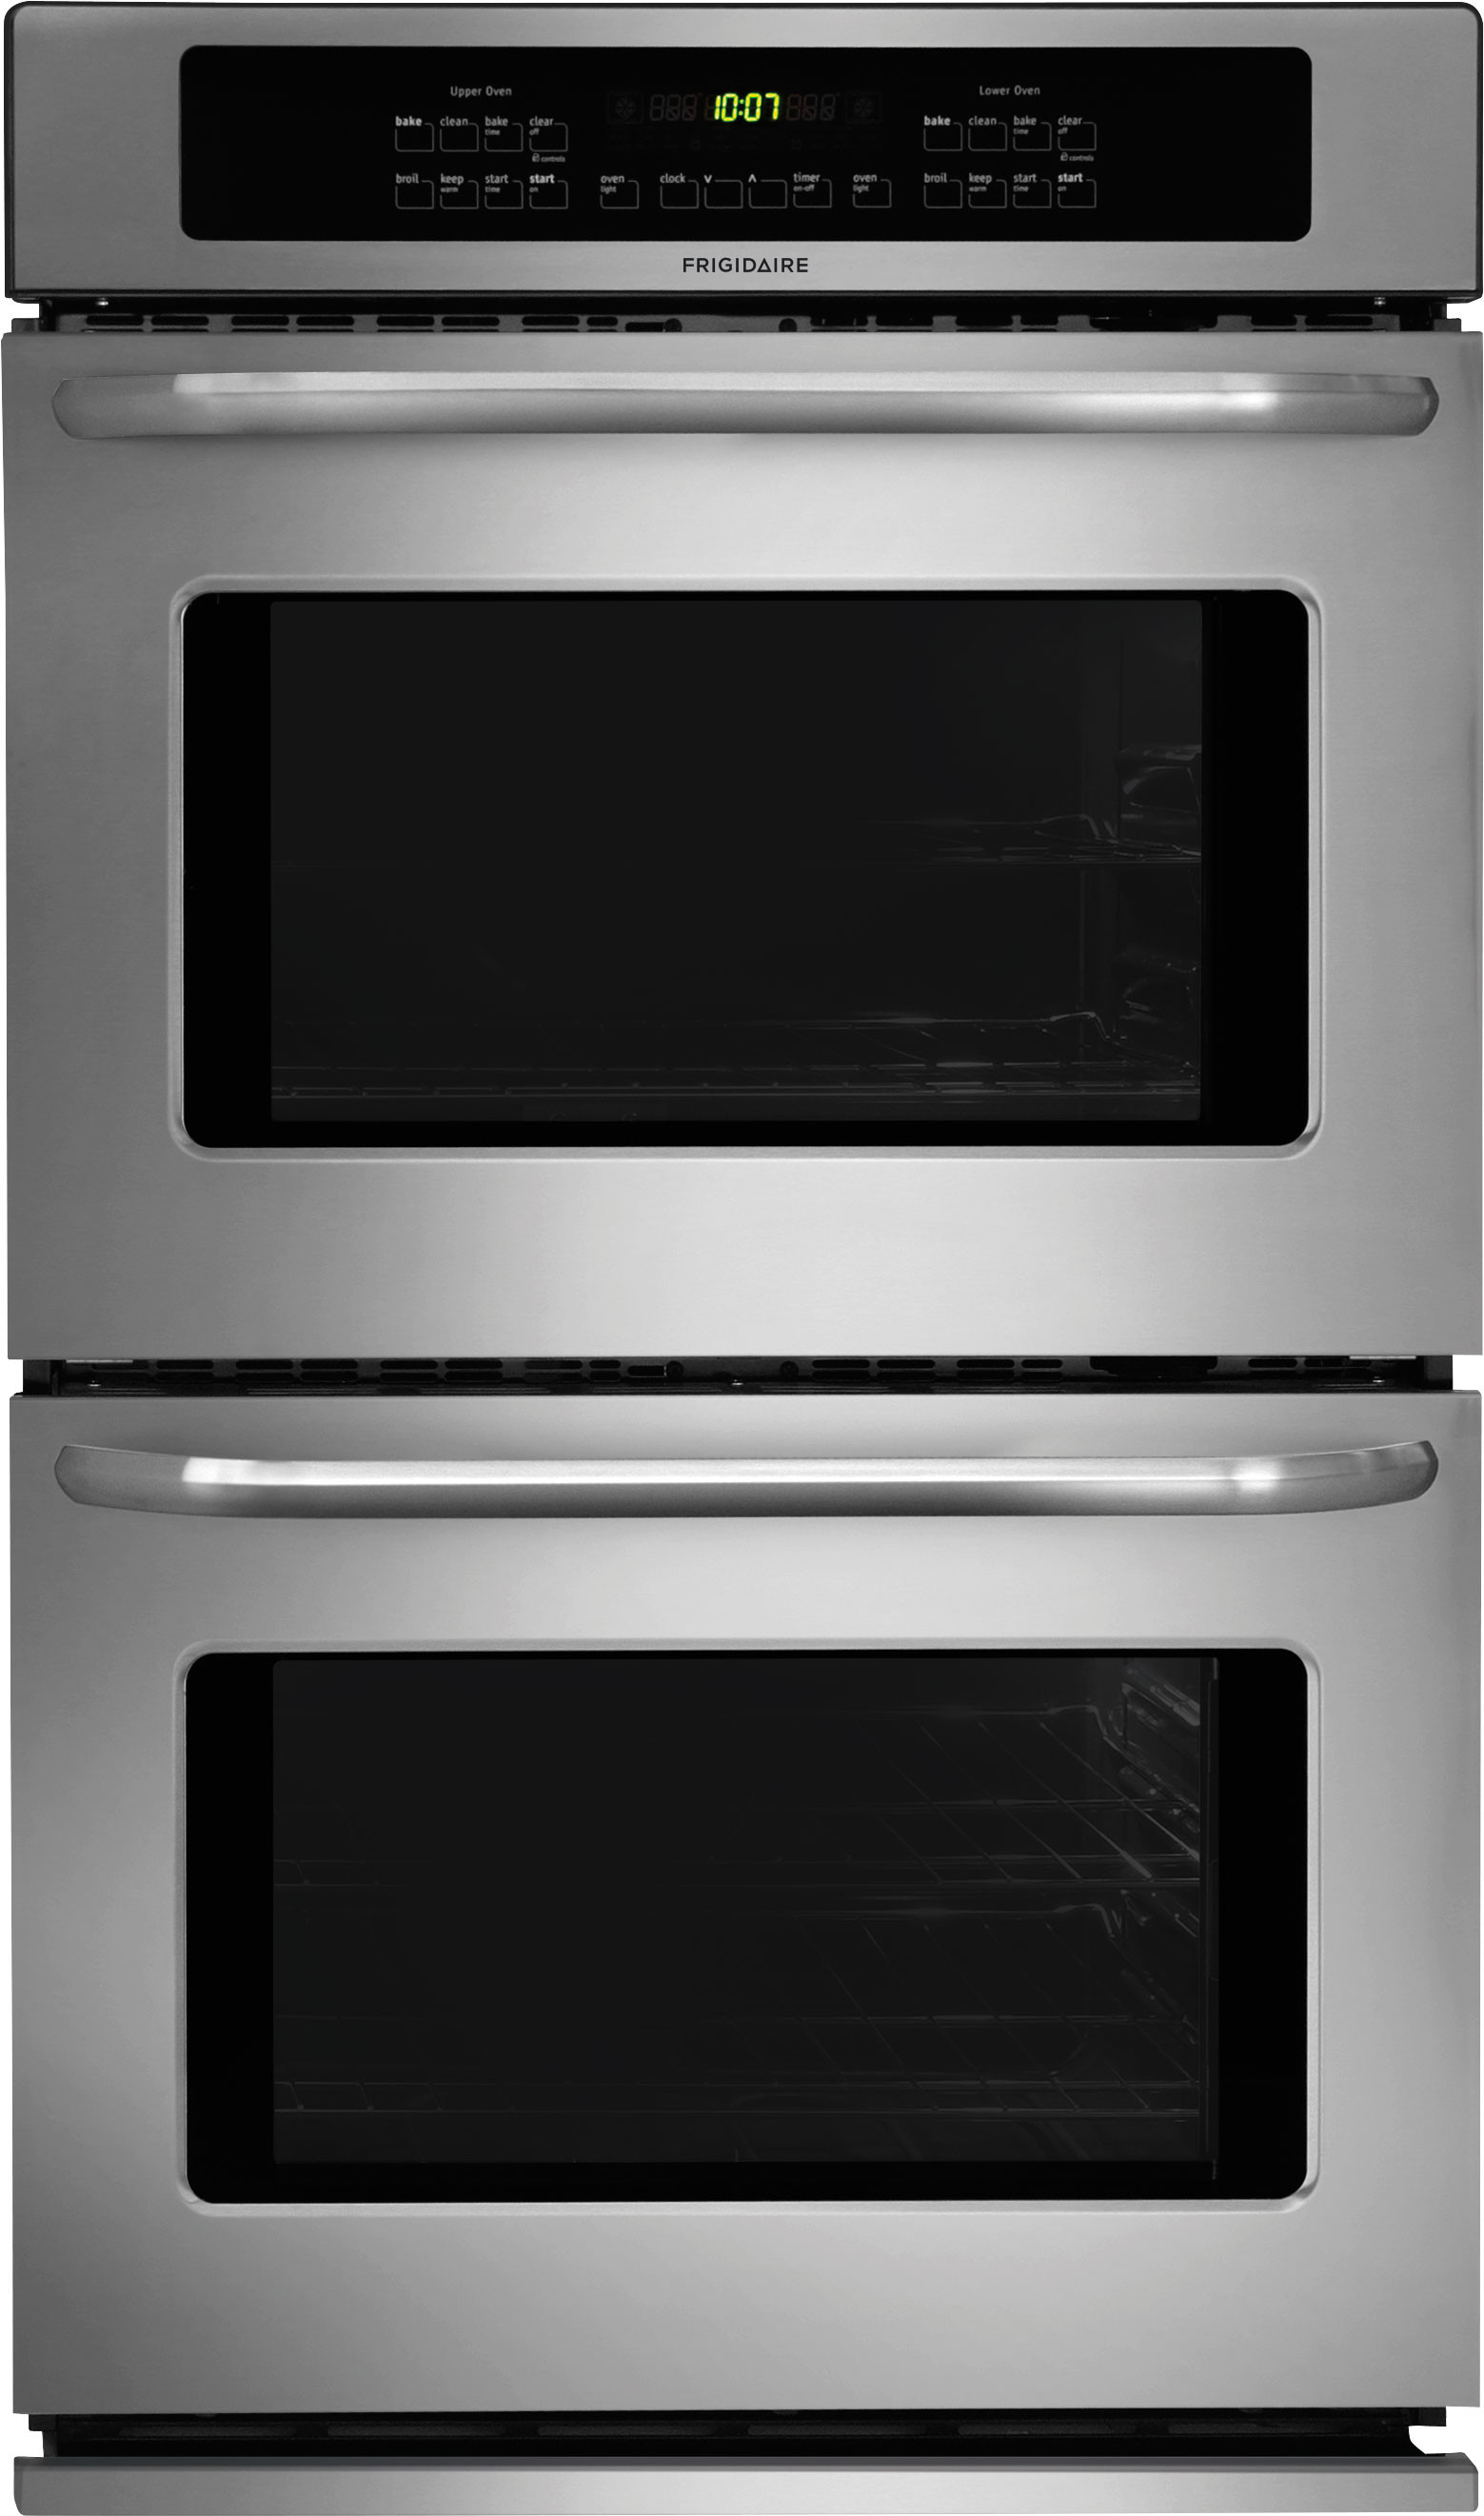 Side by side double oven cost - Side By Side Double Oven Cost 3